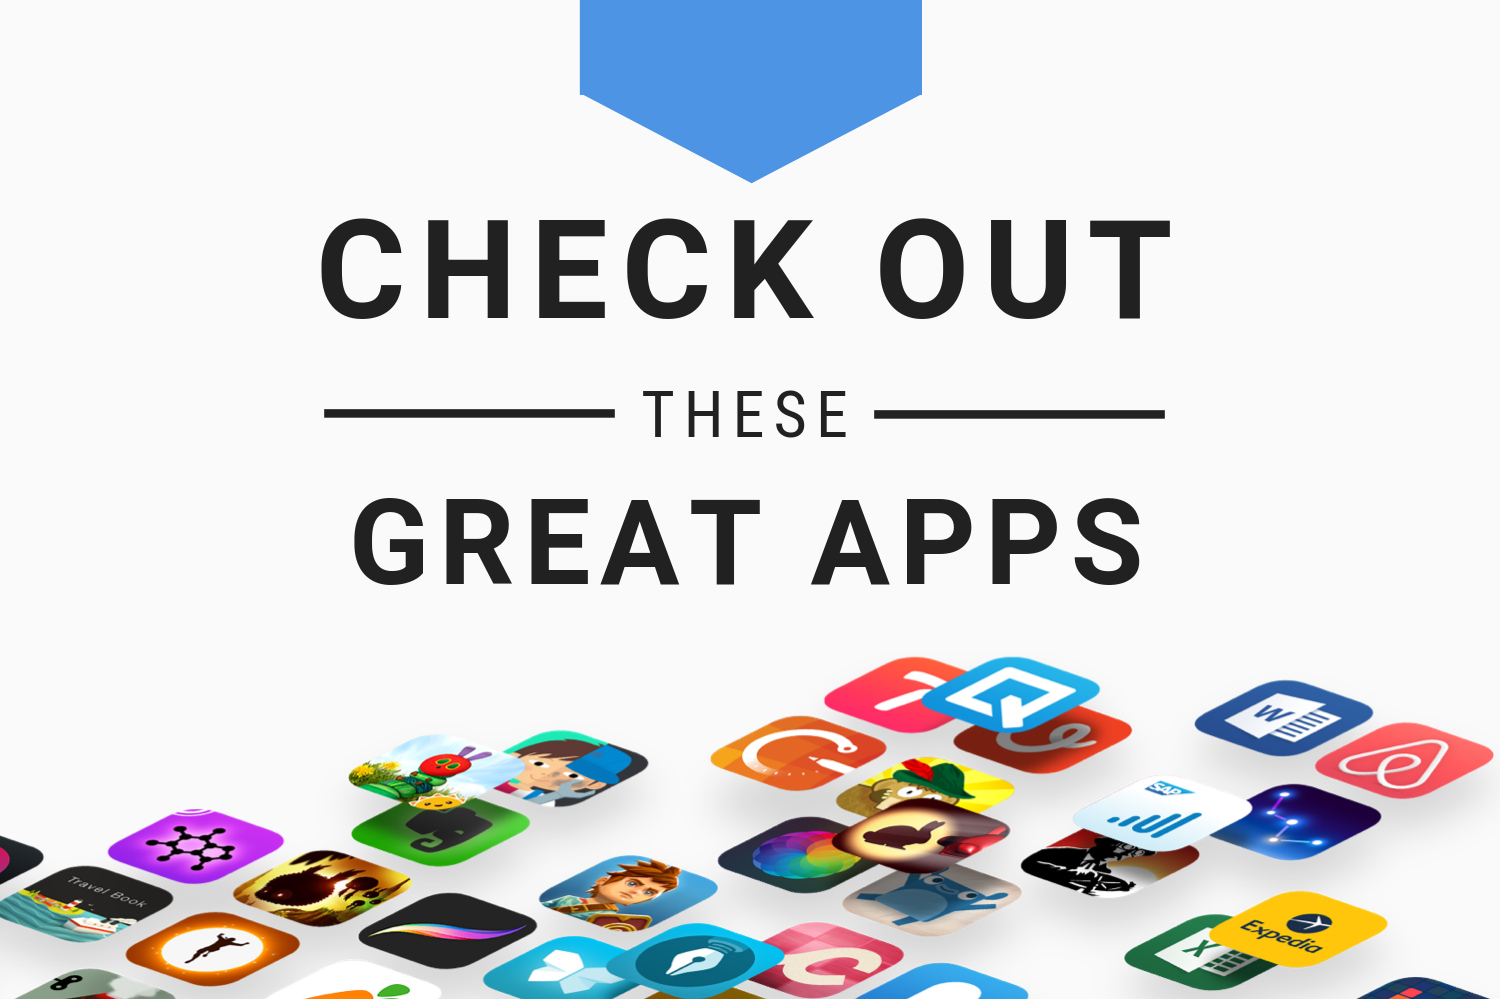 LifeWheel, Worrydolls, about:blank, and other apps to check out this weekend